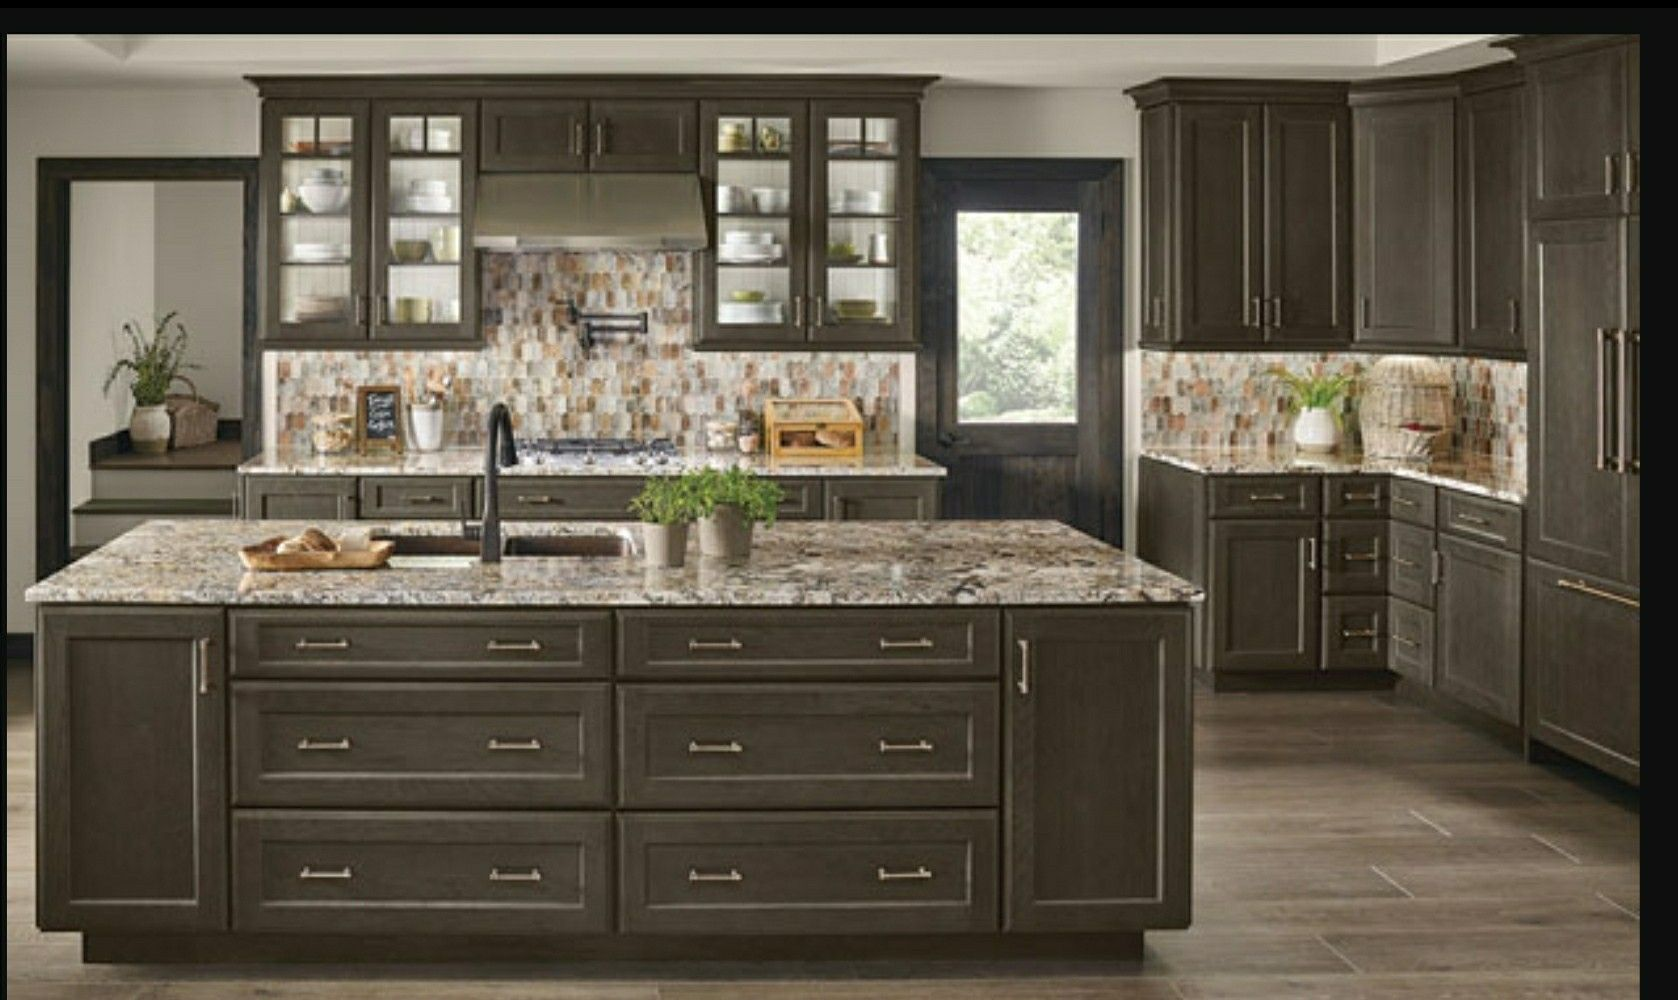 Kraftmaid Baltic cabinets in 2019 | Kitchen cabinets for ...